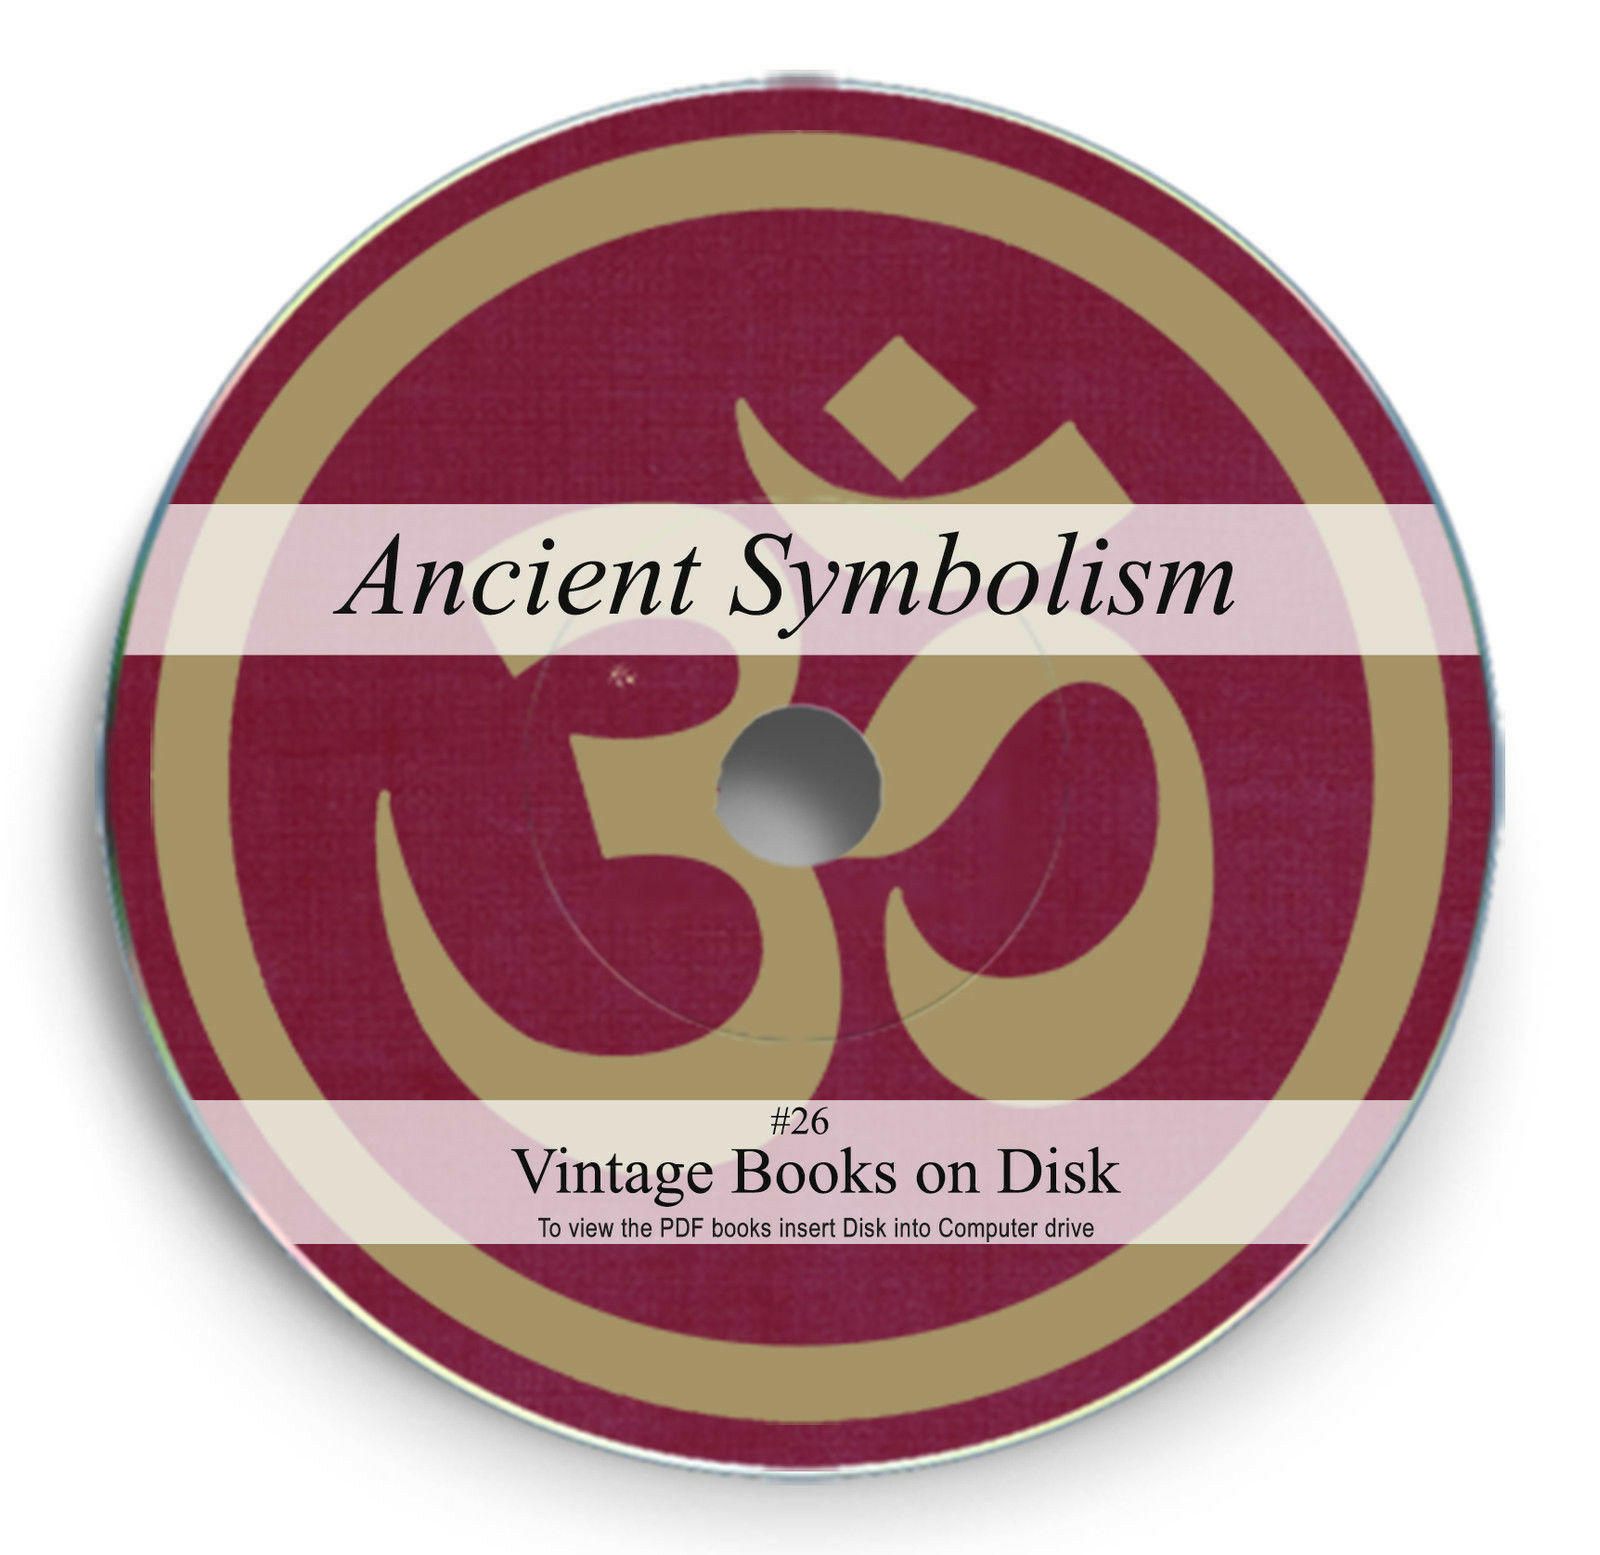 Rare symbolism books on dvd ancient occult symbol sign sacred 1 of 1free shipping fandeluxe Gallery